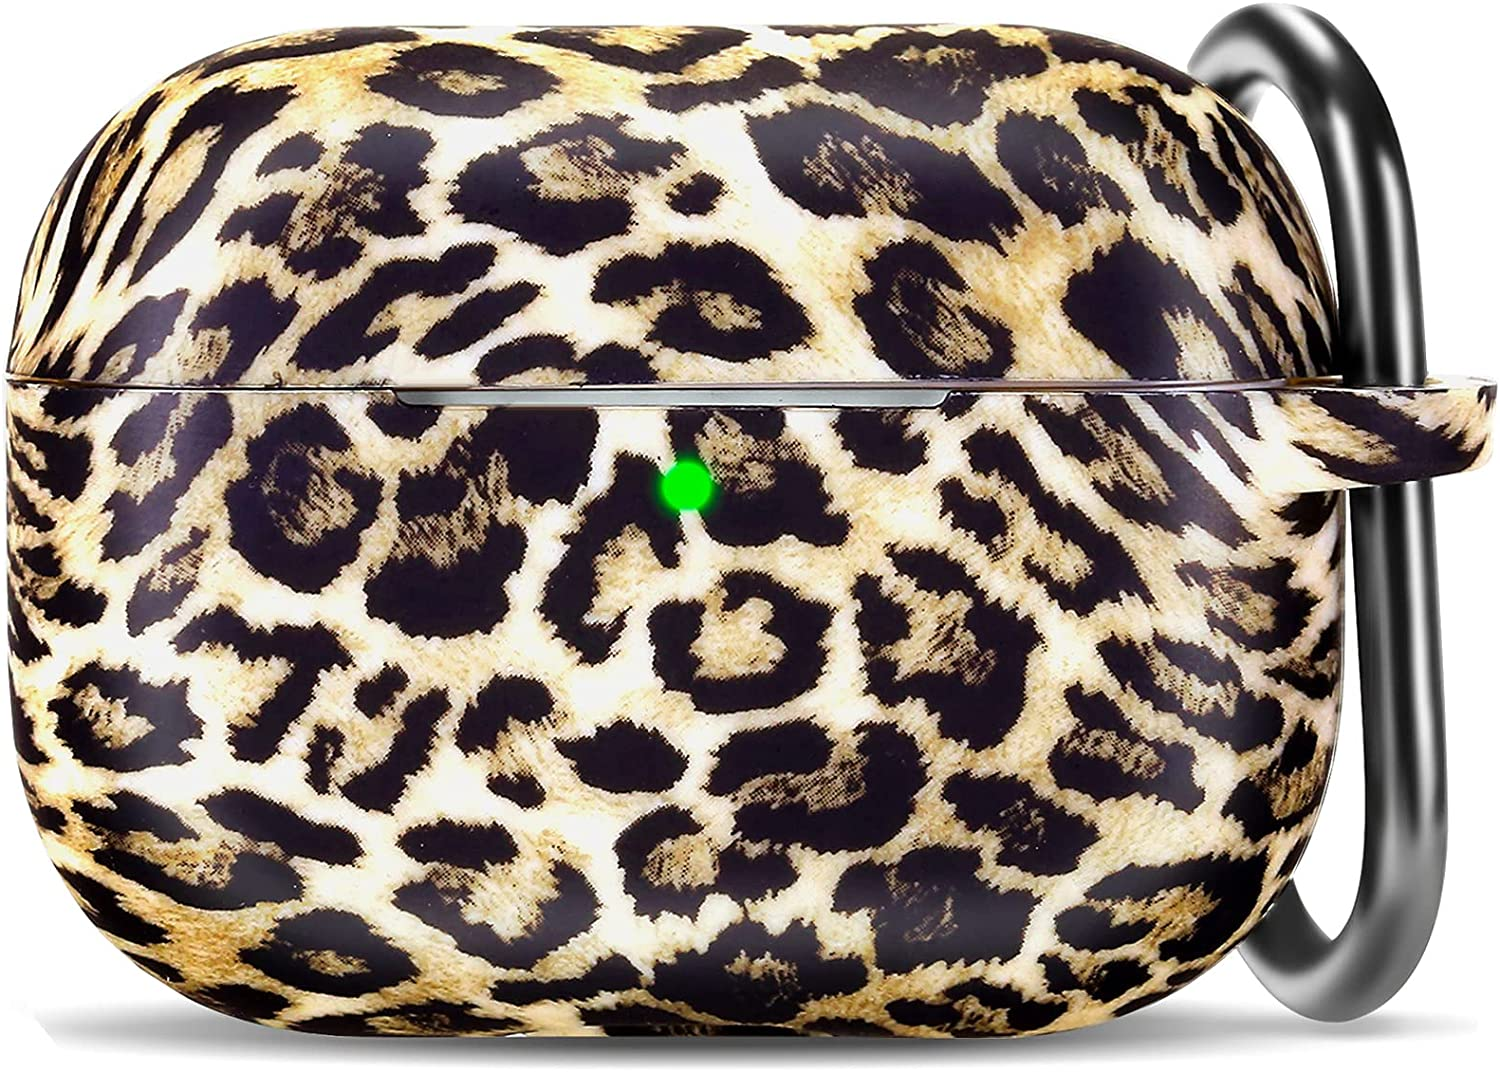 Leopard Airpod Pro Case Cover, Soft Cute Silicone Print Earpods Pro Case with Keychain for Girls and Women with Apple Airpods Pro Charging Case